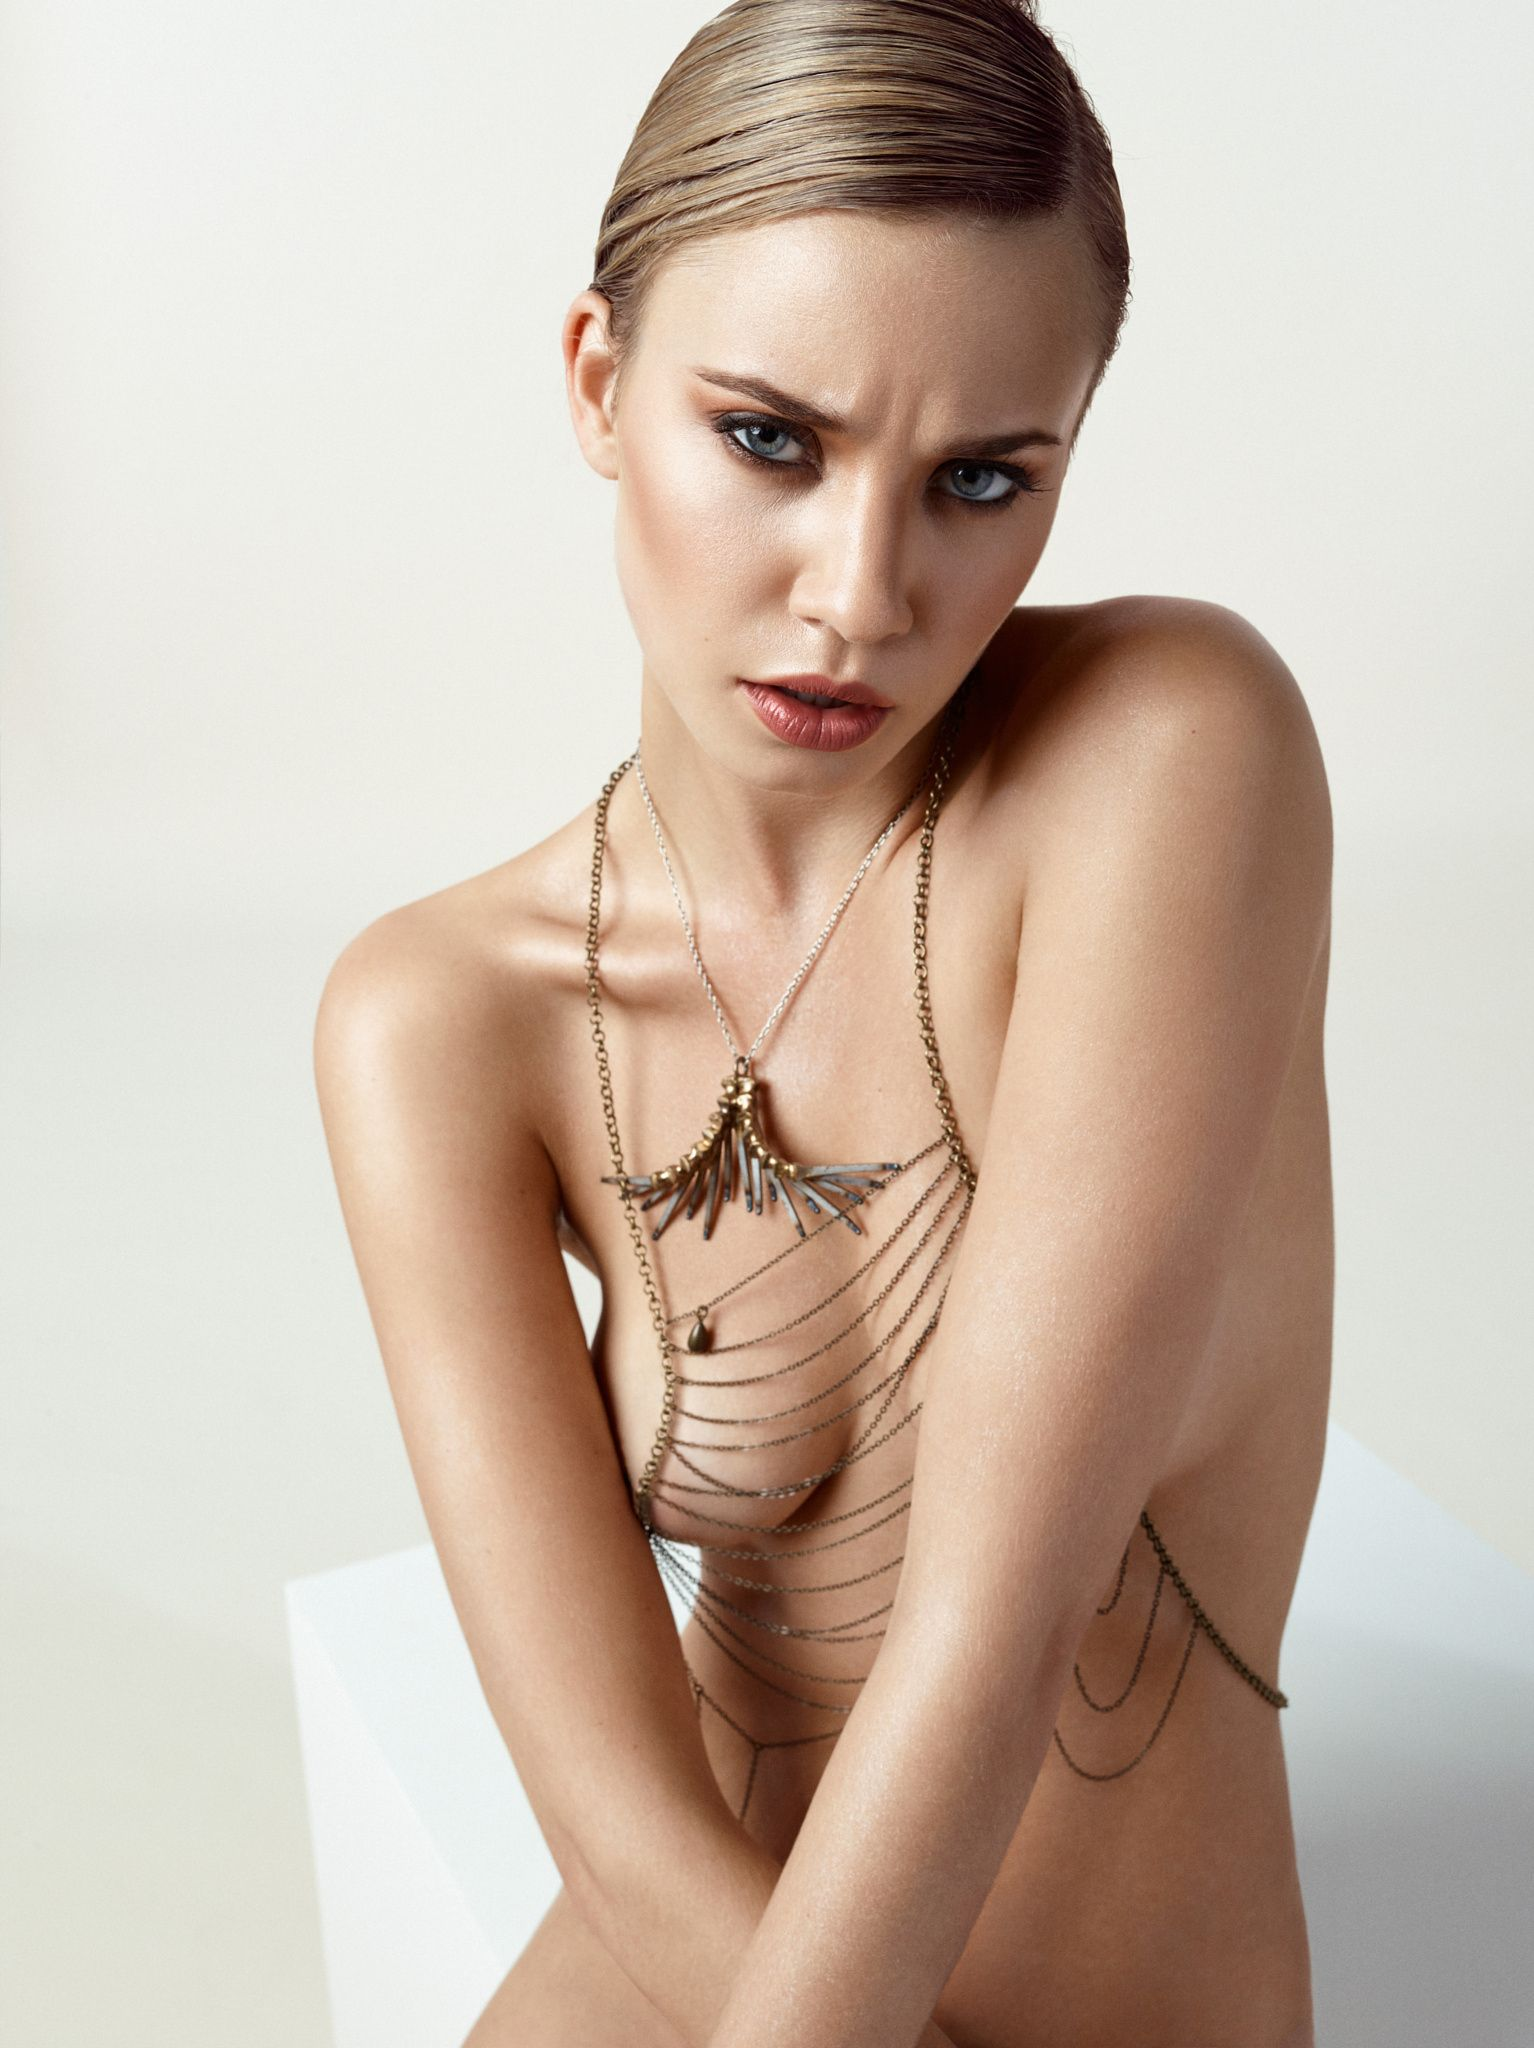 from Thaddeus sexy nude jewellery models